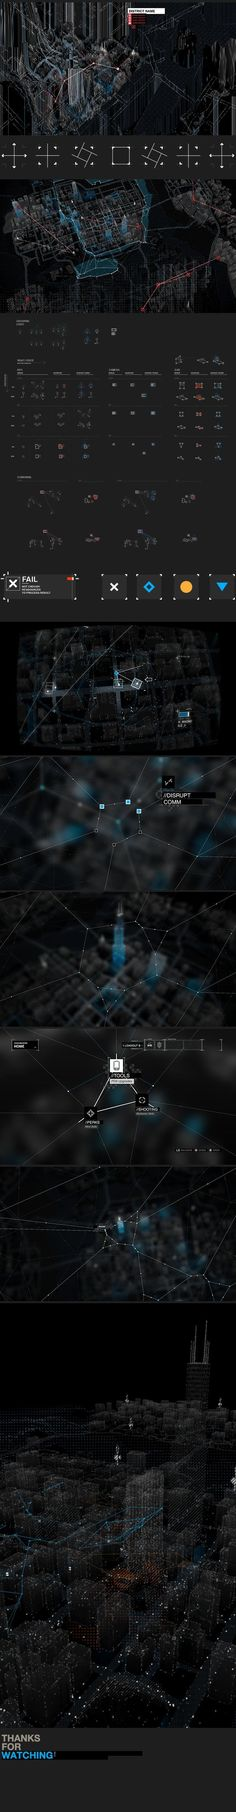 WATCH_DOGS : The Grid by Timothe Lapetite, via Behance:. If you like UX, design, or design thinking, check out theuxblog.com